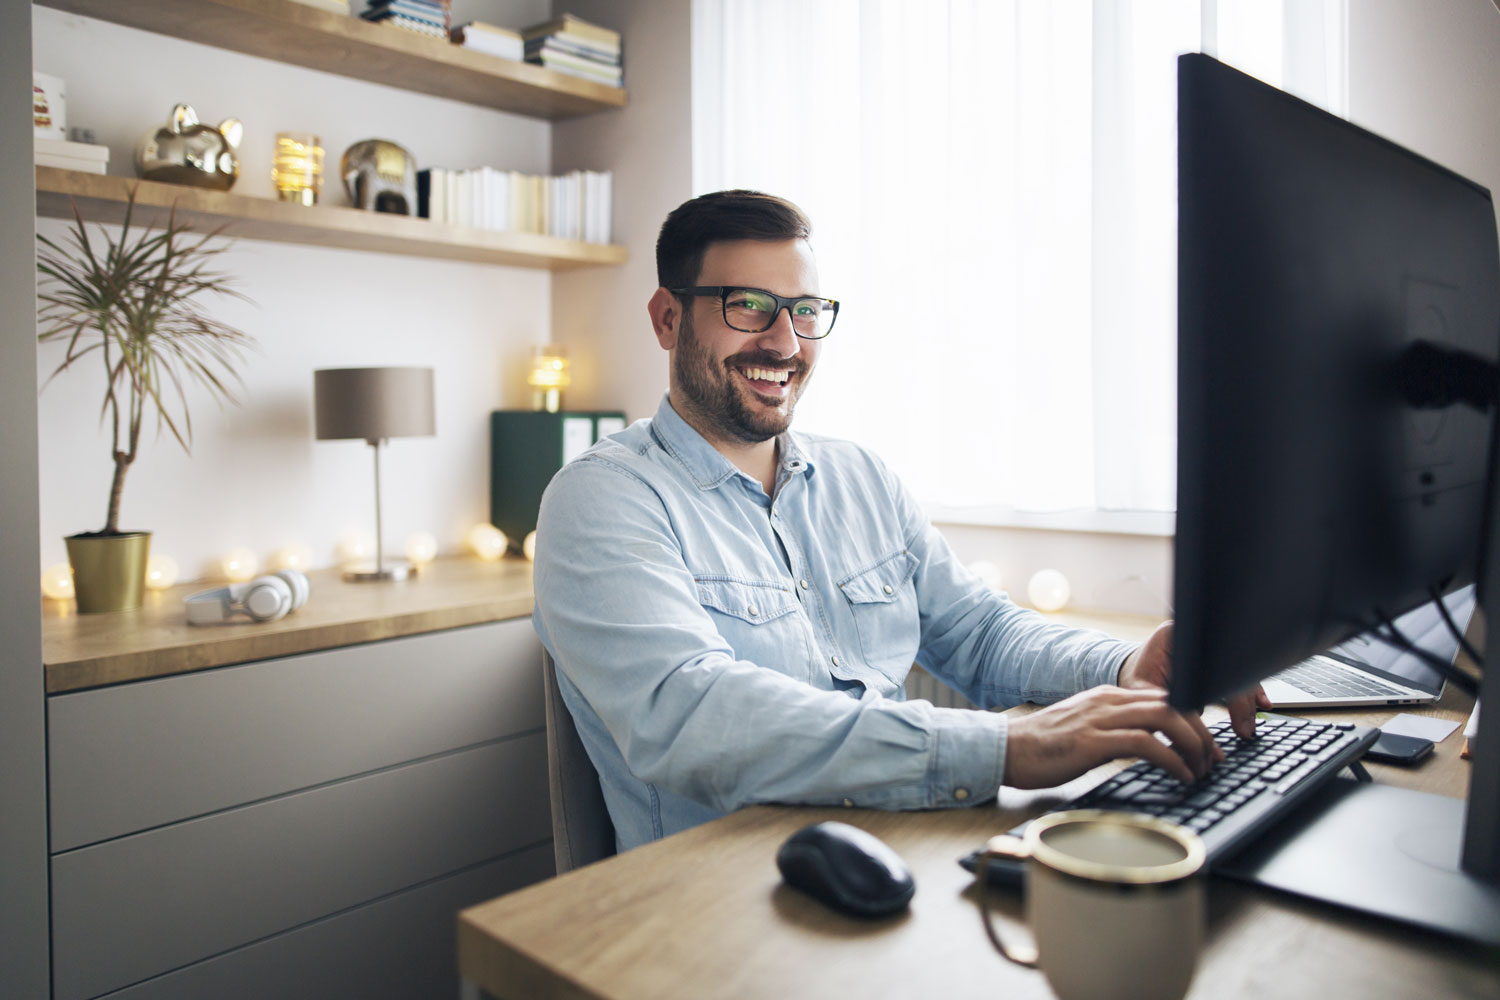 Man happily working from home office